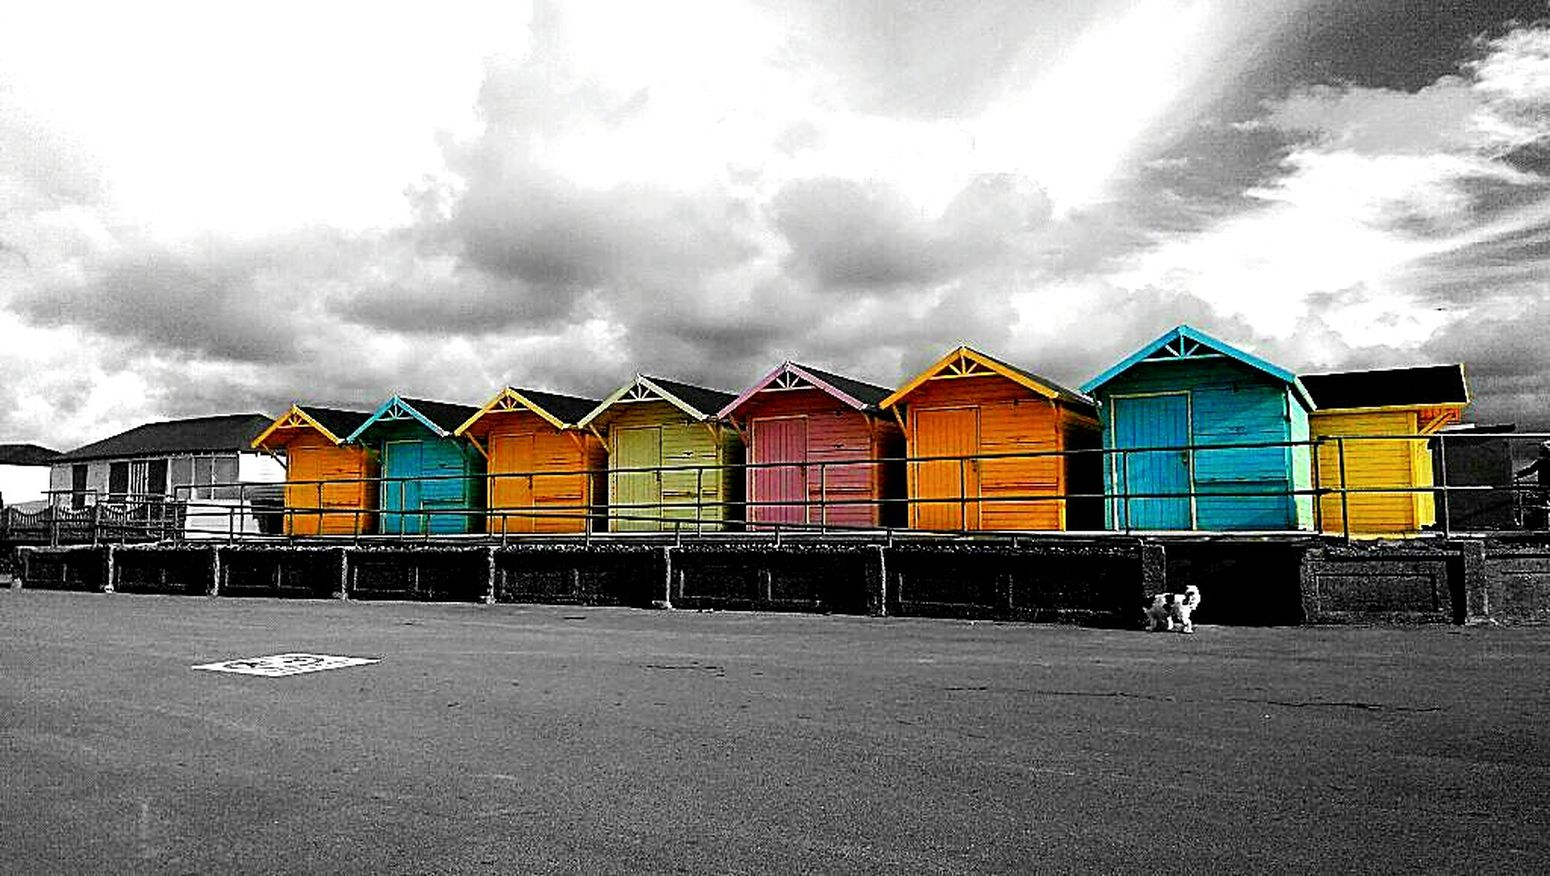 Fleetwood Beach huts Smartphonephotography blackandwhite photography Colour Splash No People Chexk This Out Uk United Kingdom